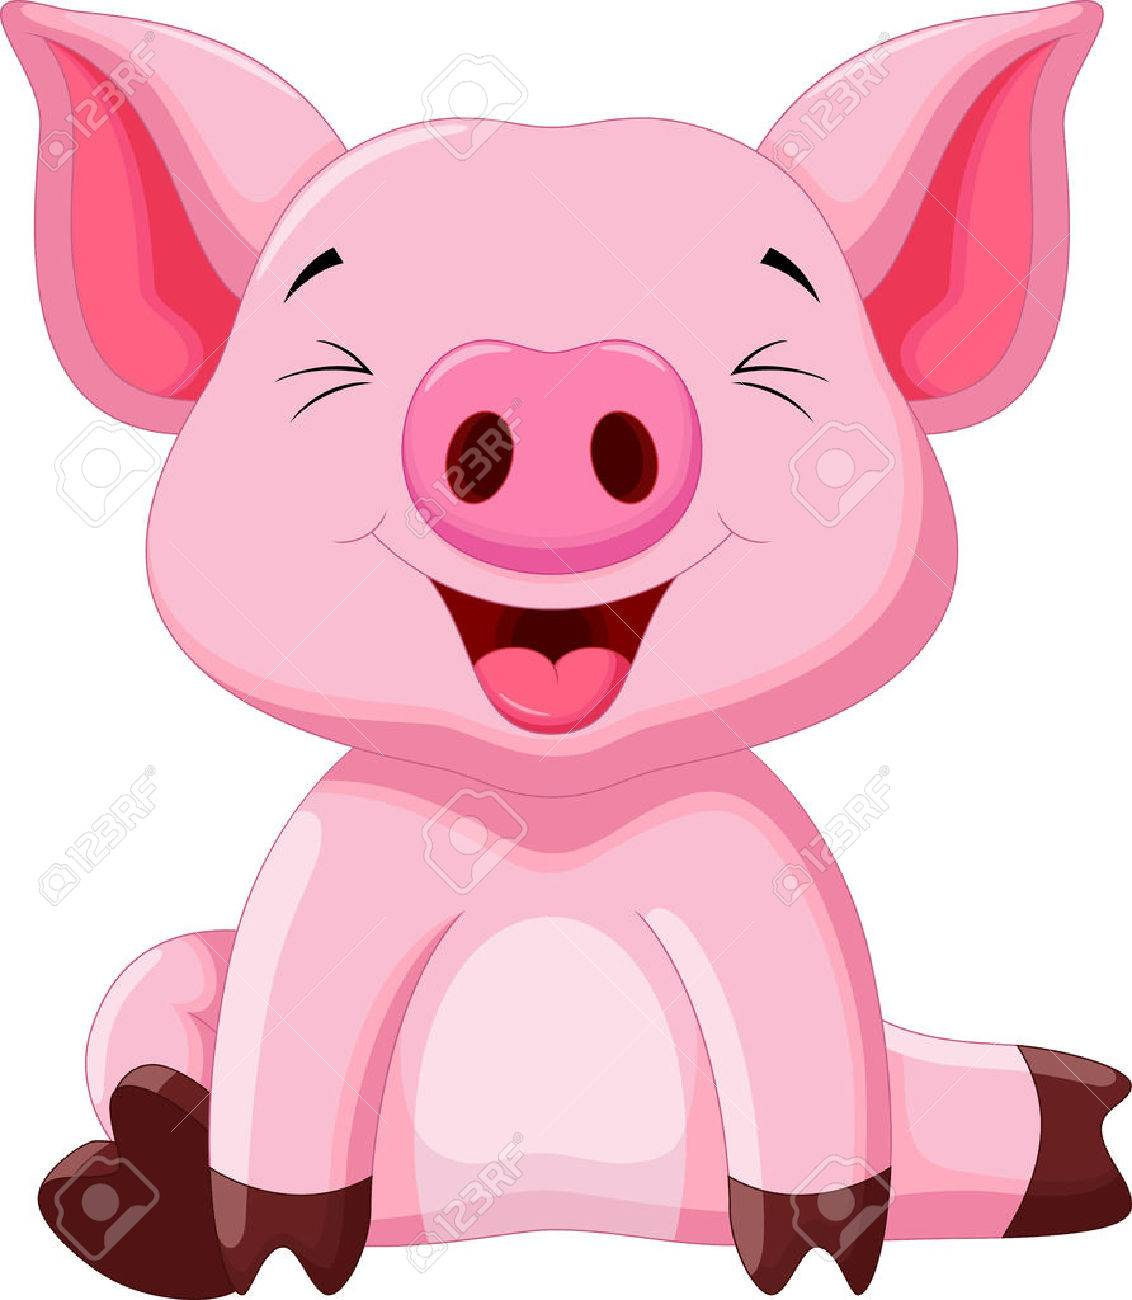 Image result for pig cartoon